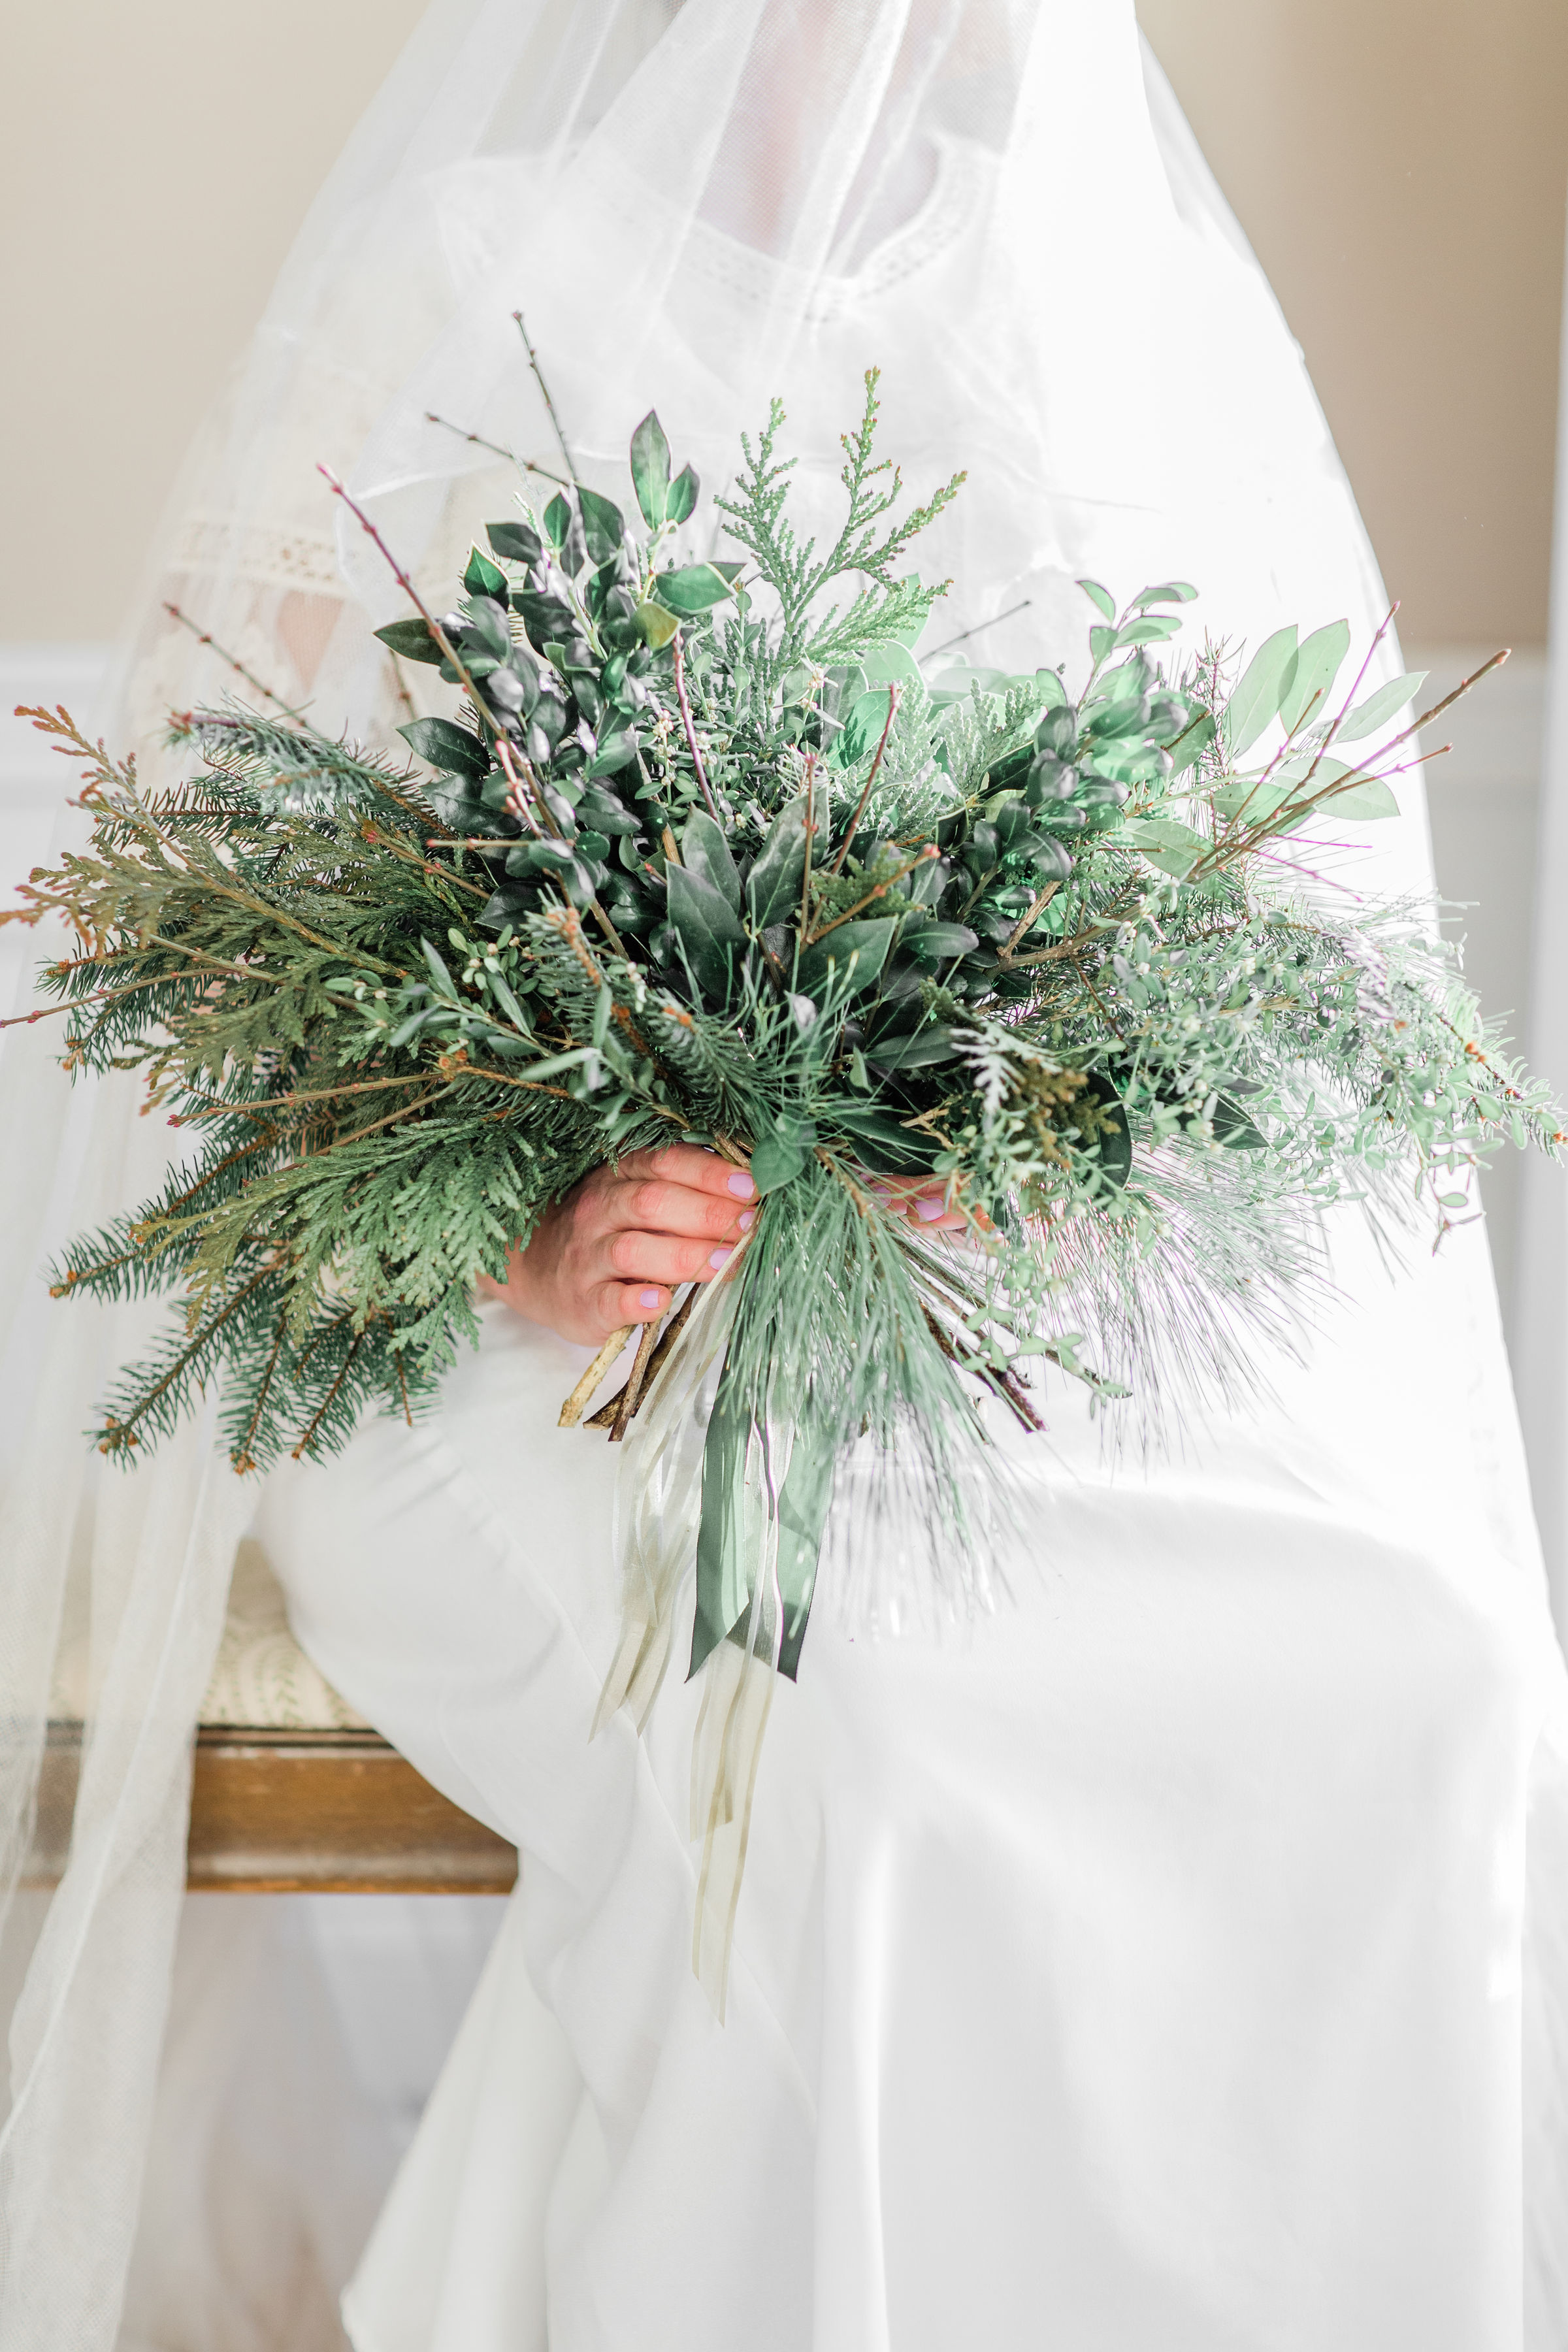 greenery bouquet, greenery wedding, bridal bouquet, winter wedding, winter greenery, winter decor, evansville wedding, evansville indiana wedding, evansville florist, evansville indiana florist, evansville wedding flowers